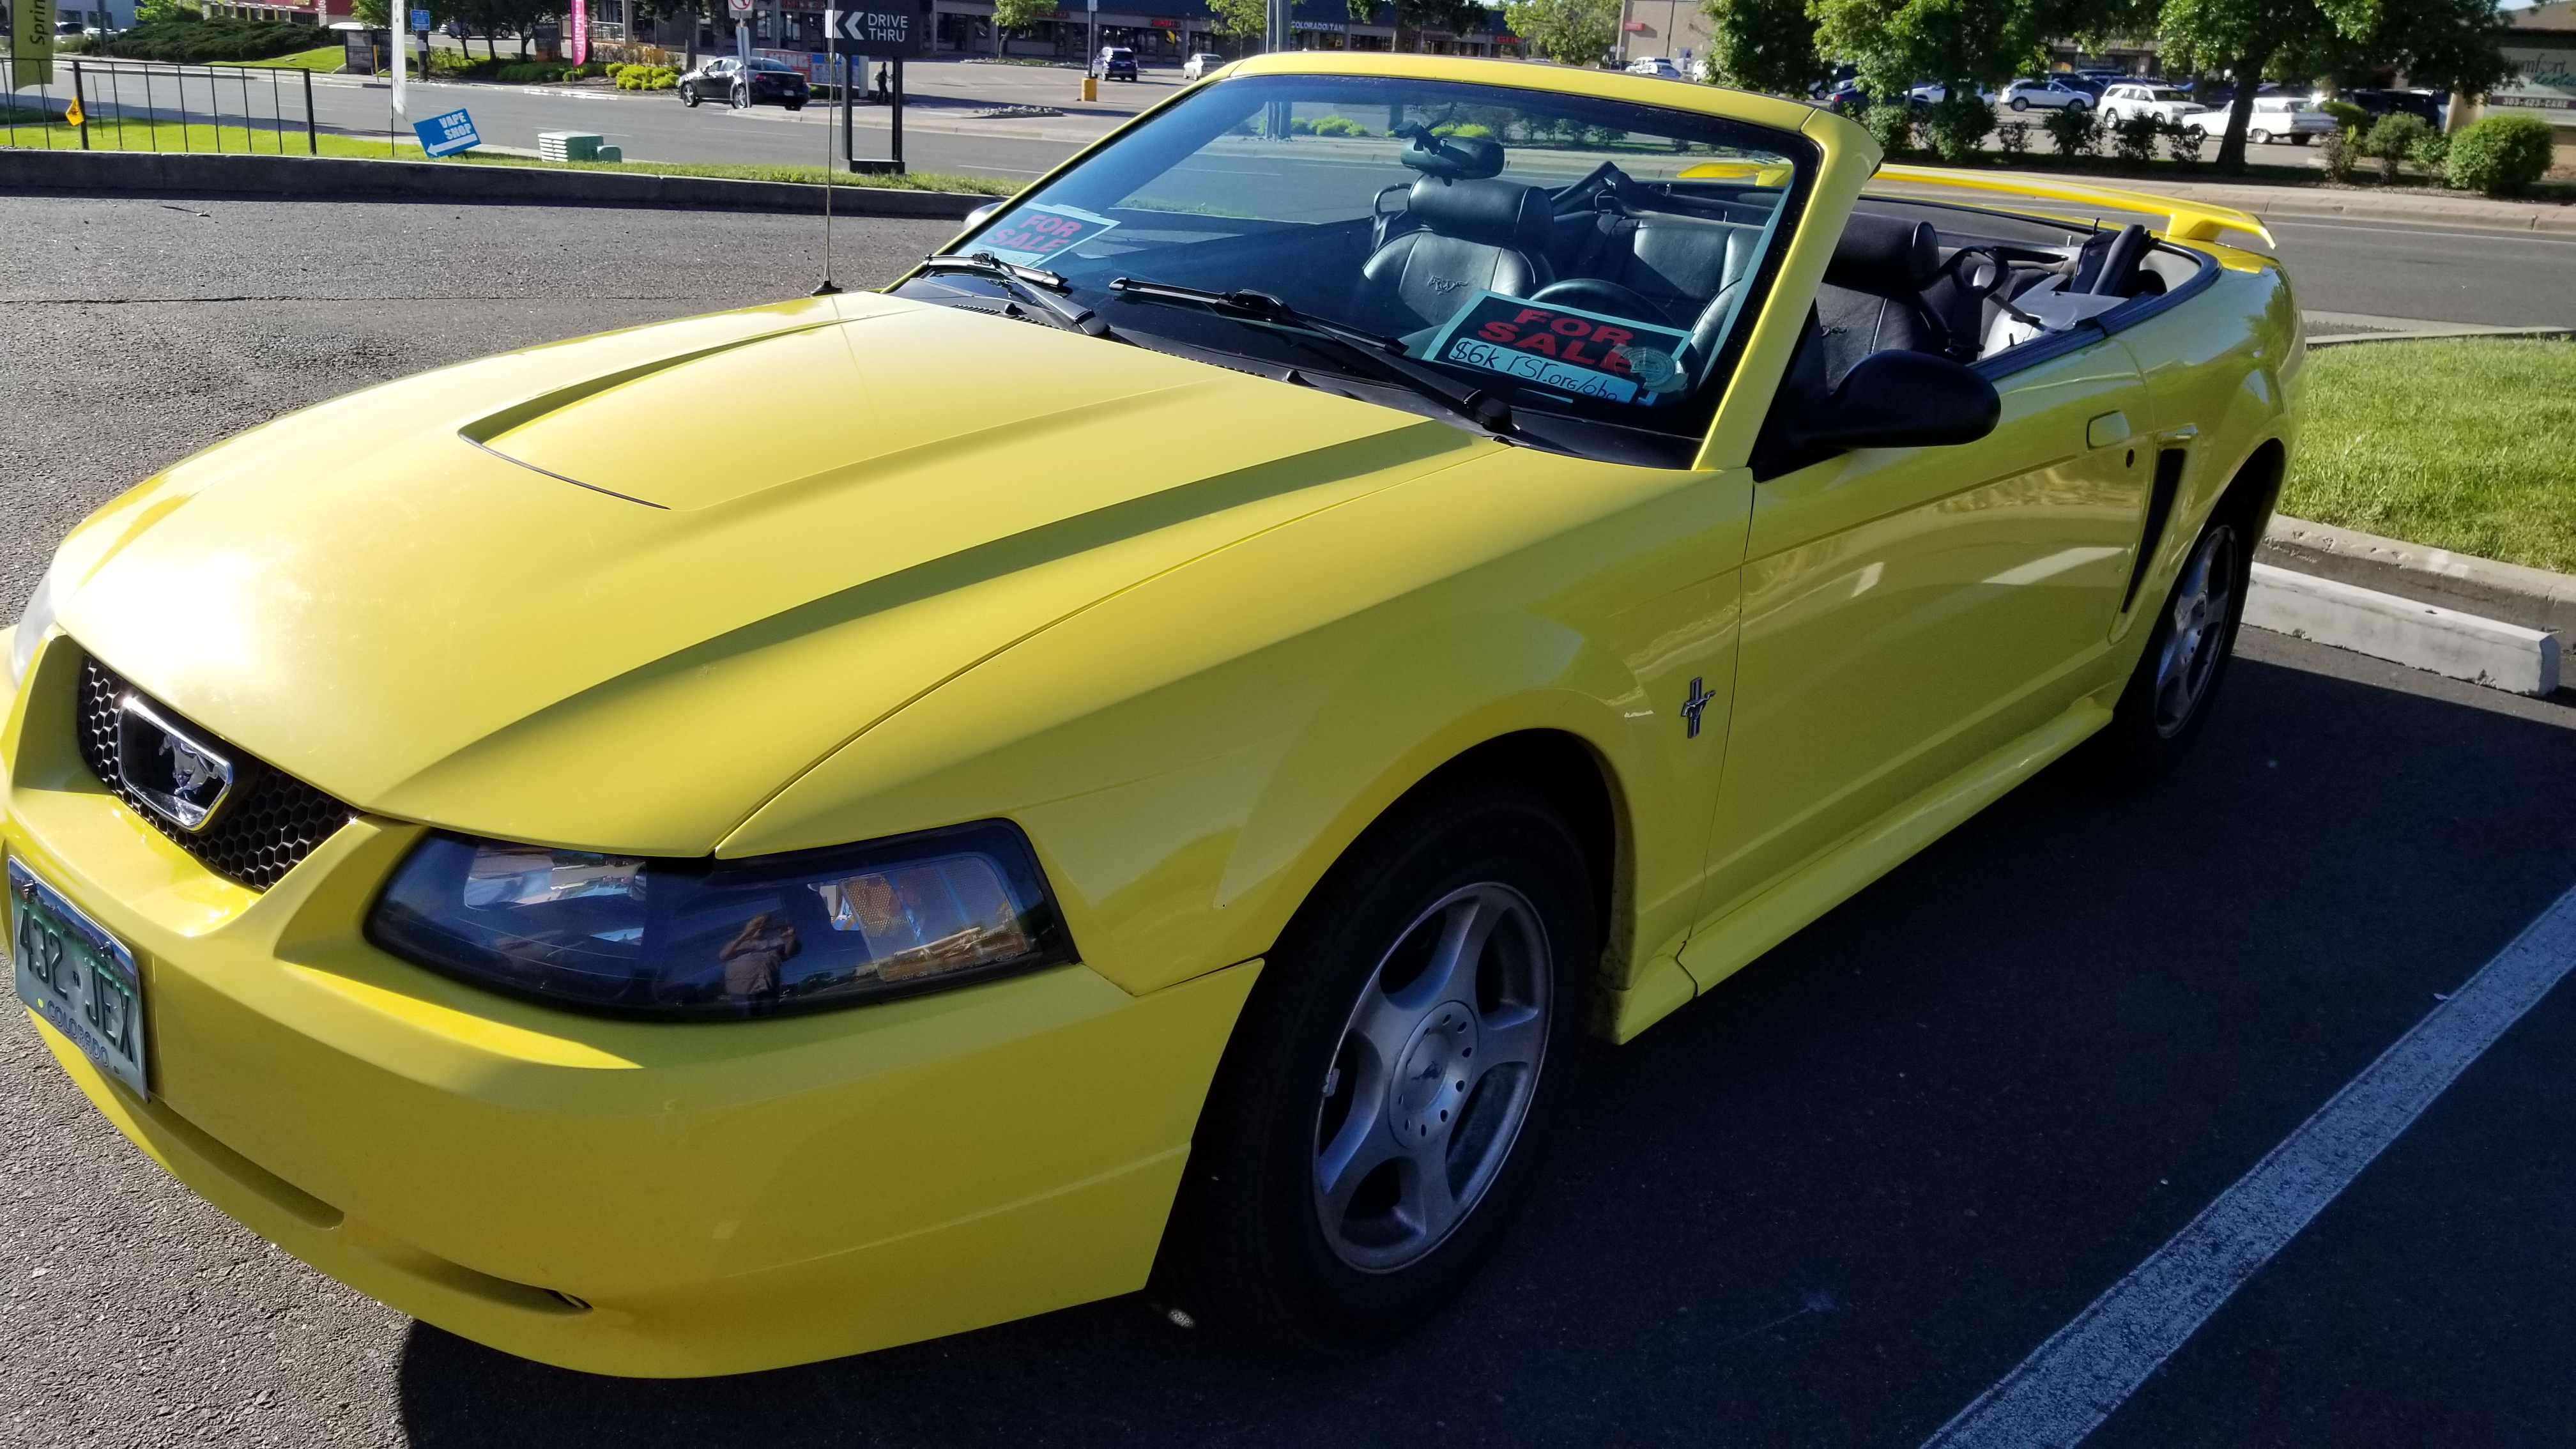 Mustang For Sale Craigslist - Phiz